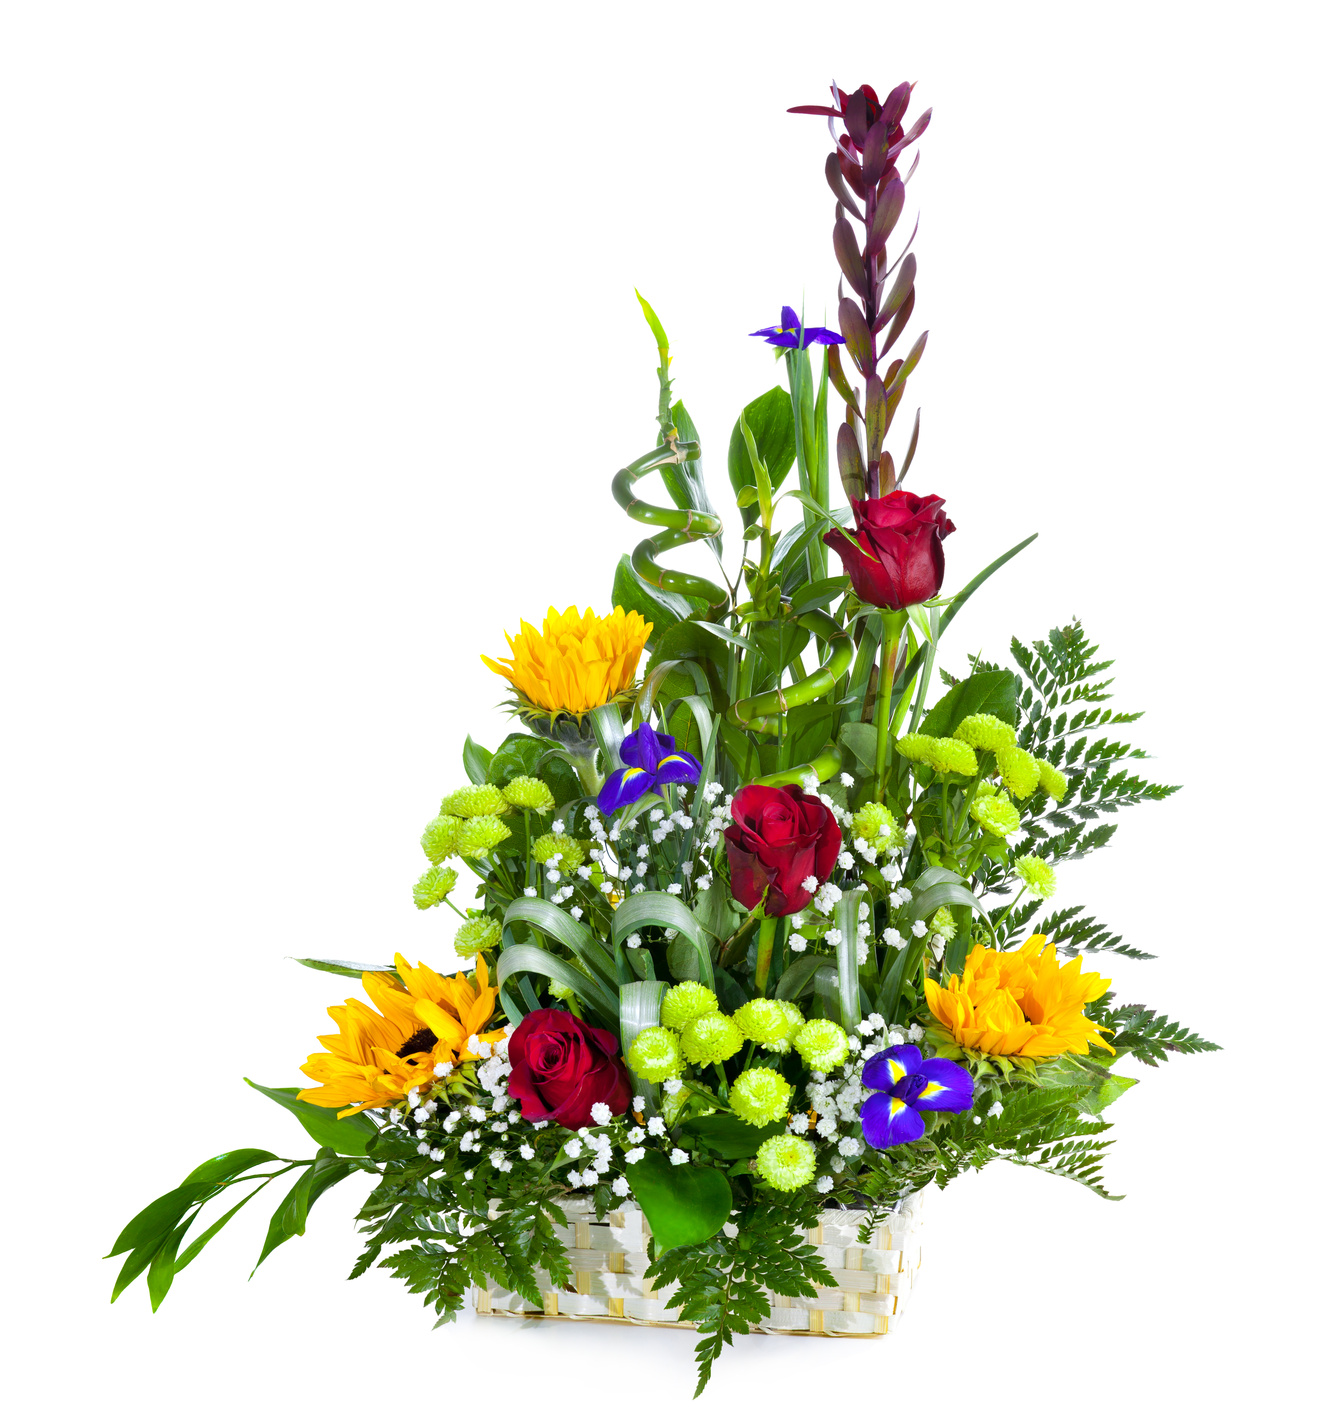 Your local florist the key to a beautiful bouquet gebh arts floral bright flower bouquet in basket isolated over white background izmirmasajfo Choice Image